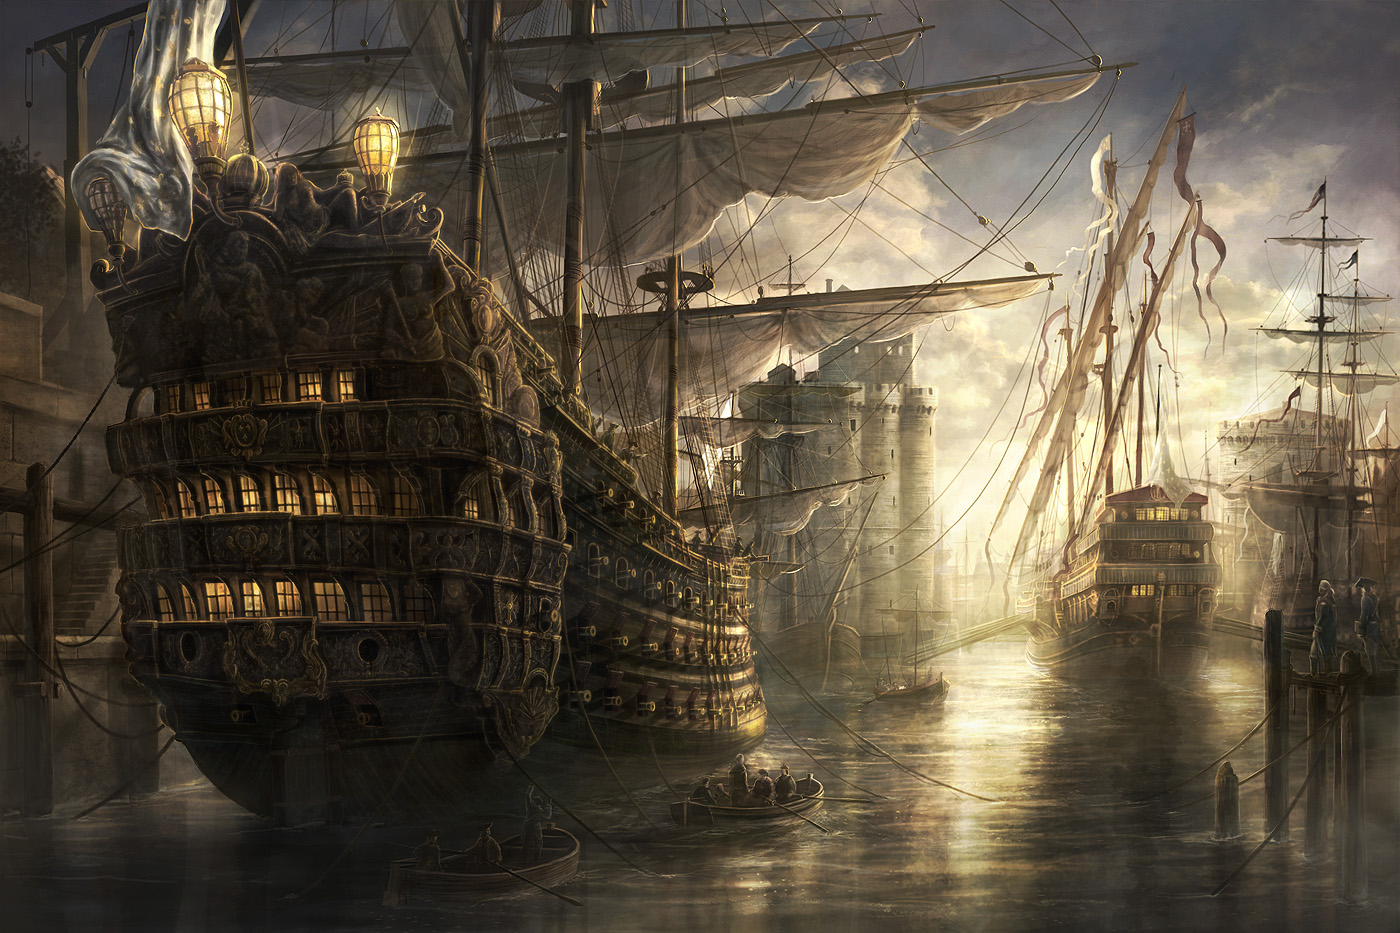 Old Pirate Ship Wallpaper Free hq Old Ship Wallpaper